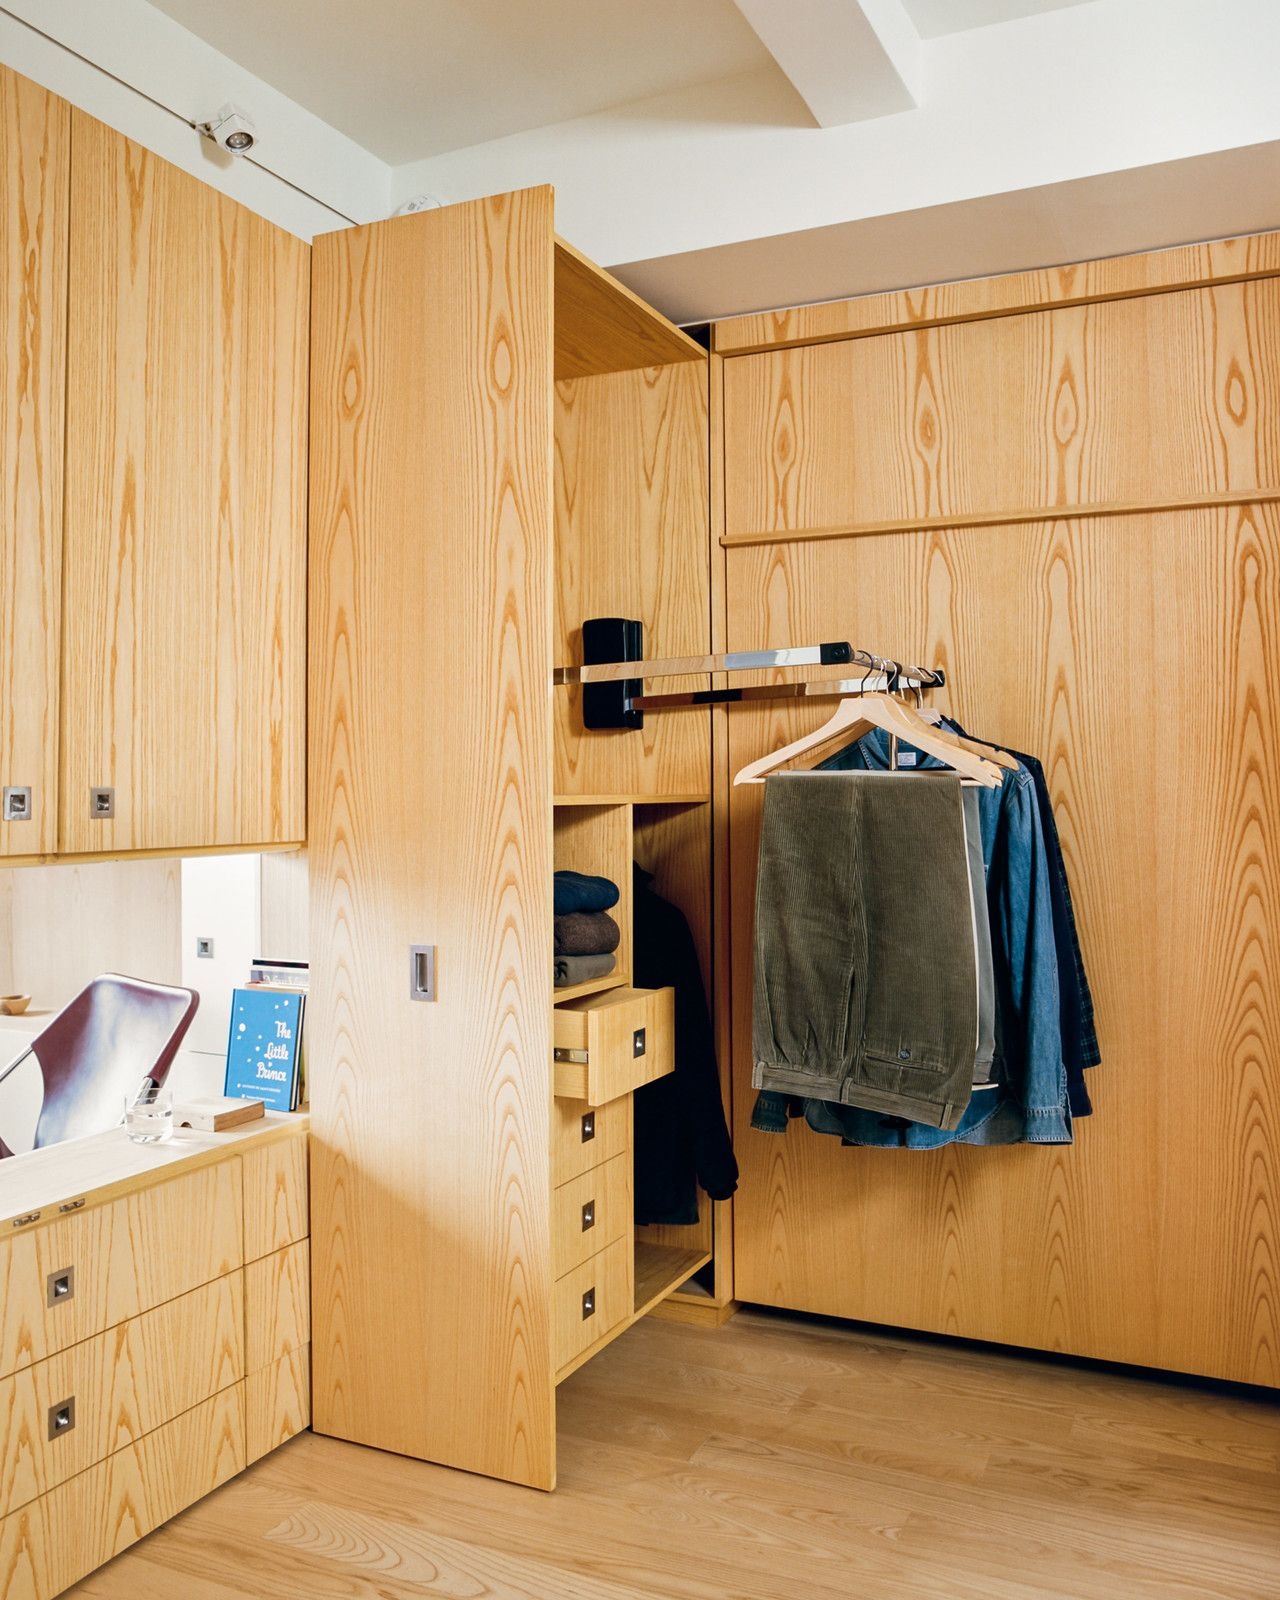 Stowing The Queen Size Room Makers Murphy Bed By SICO Frees Up Access To  Custom Built In Cabinets And Pull Down Closet Rods By Hafele That  Illuminate When ...